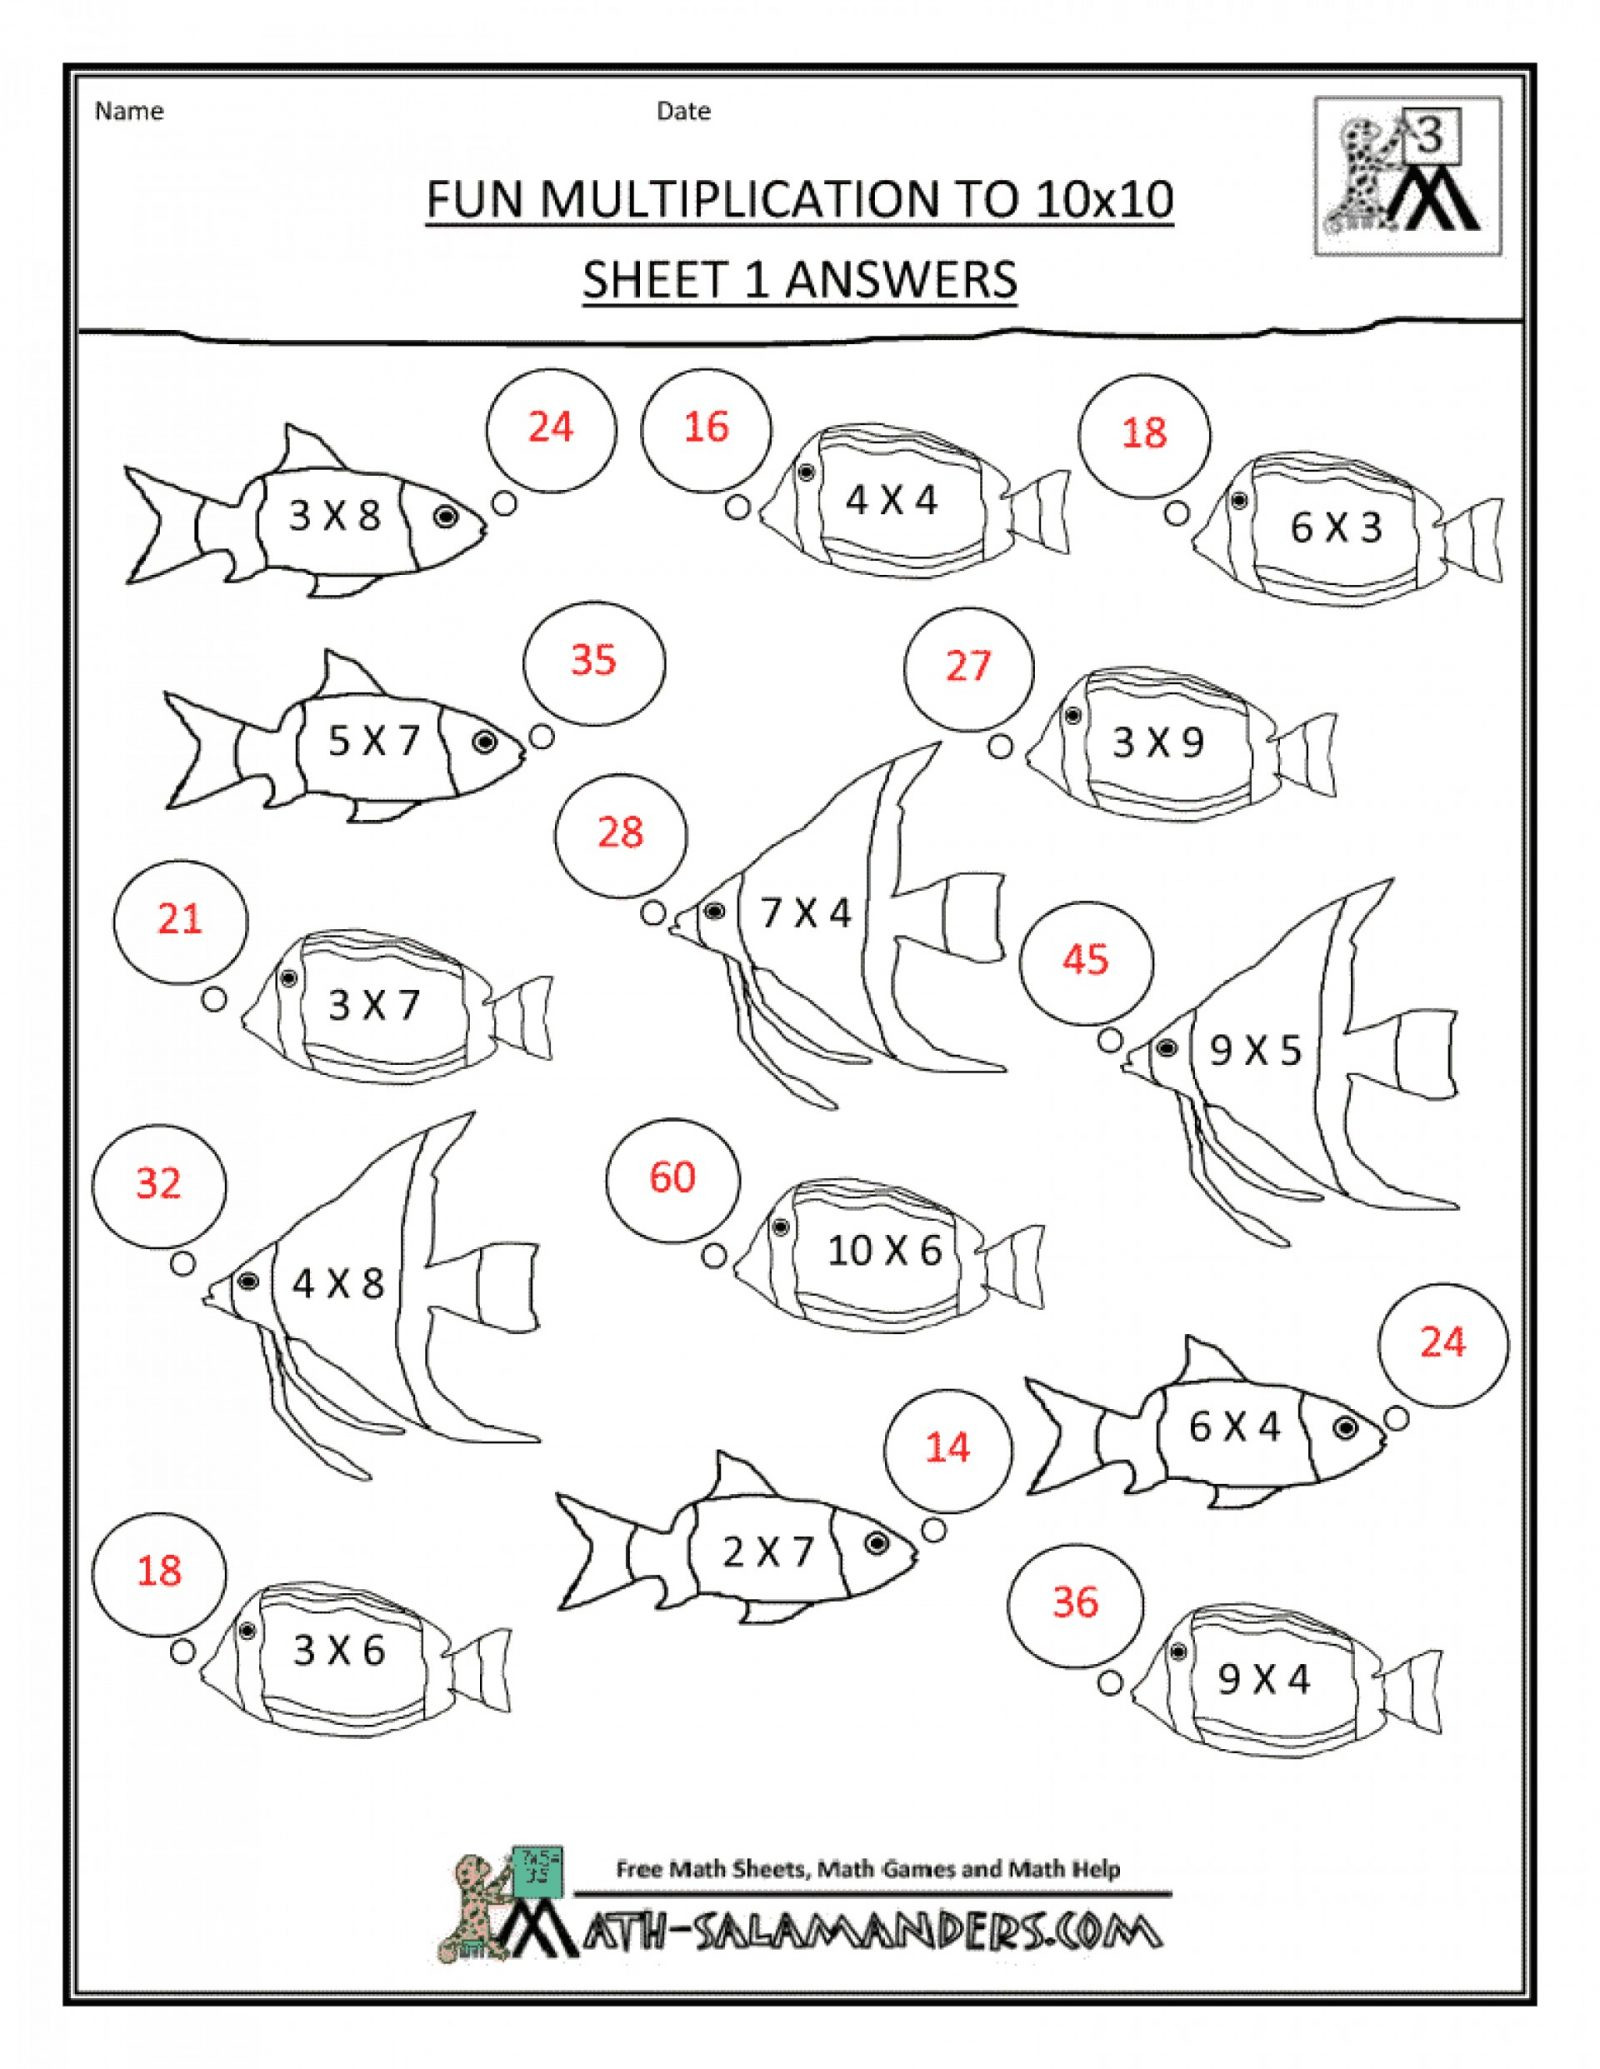 6th Grade Math Puzzles Worksheets Primary Math Pi Worksheets Printable Fun Worksheets for 1st